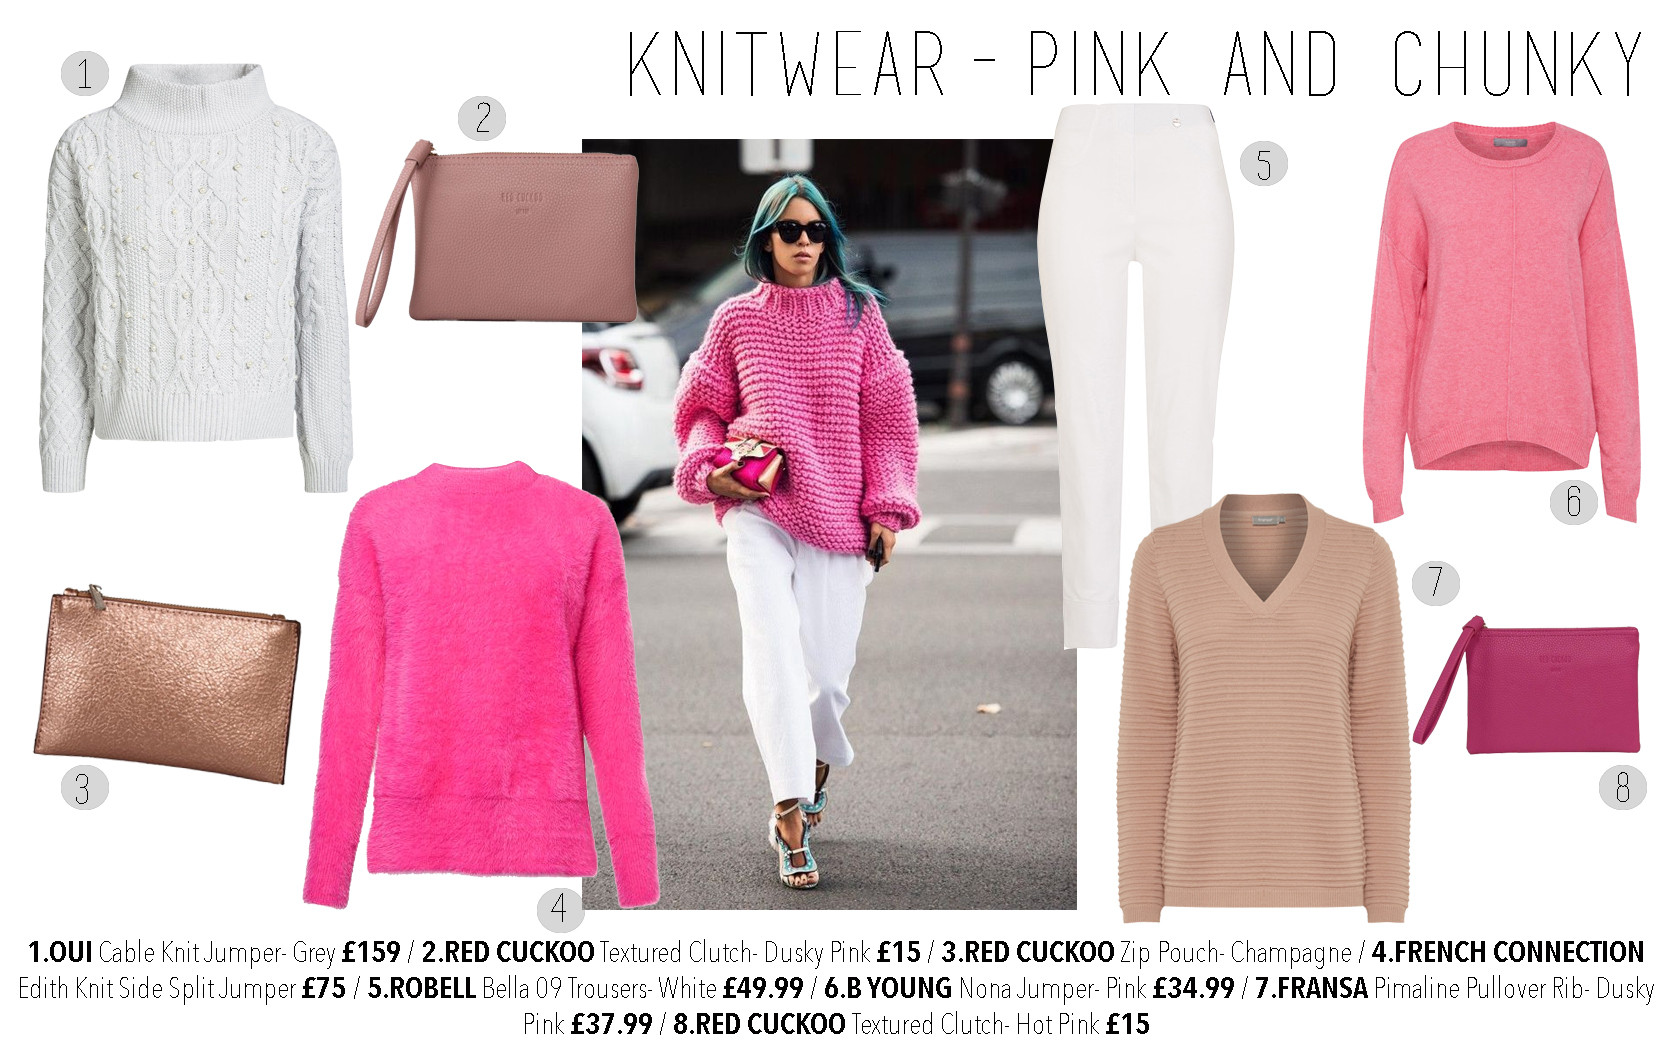 Knitwear pink and chunky